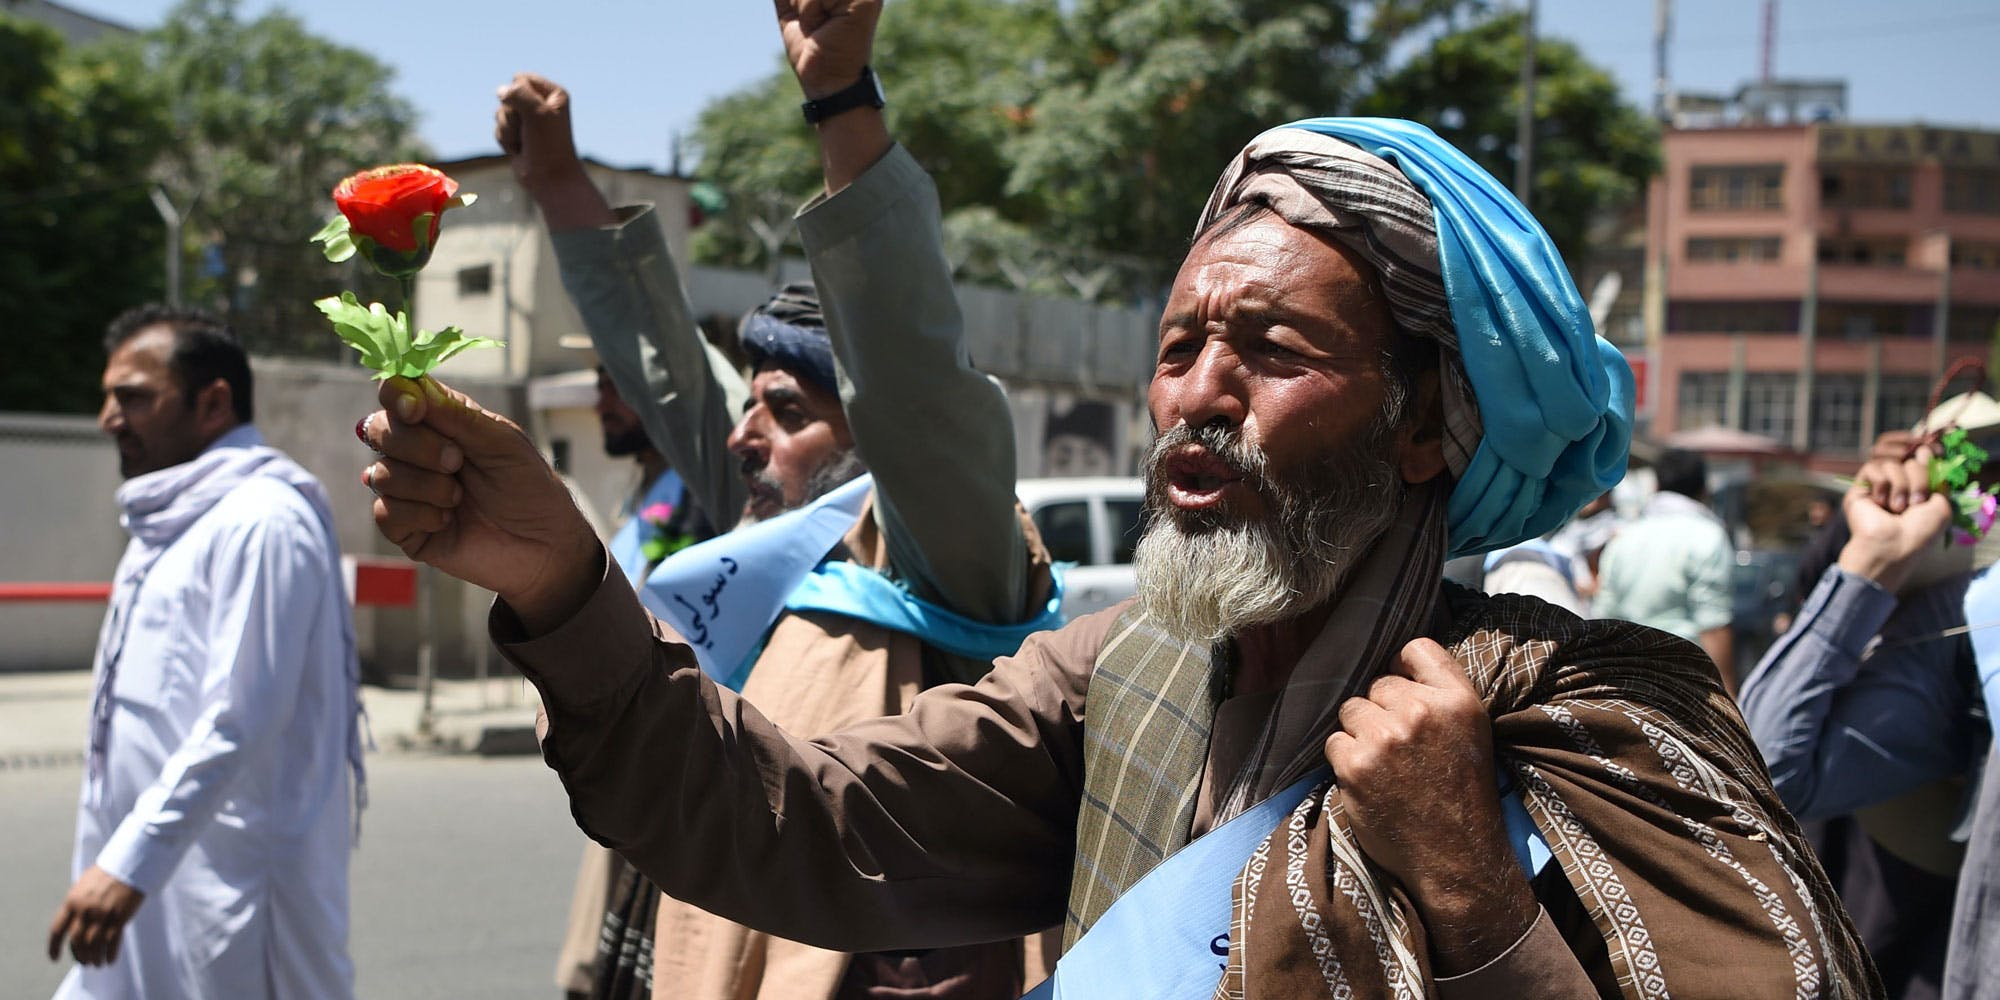 An Afghan peace activist shouts slogans in demand to an end to the war during a march from Helmand as he arrives in Kabul on June 18, 2018. - Dozens of peace protesters arrived in Kabul on June 18 after walking hundreds of kilometres across war-battered Afghanistan, as the Taliban ended an unprecedented ceasefire and resumed attacks in parts of the country. (Photo by WAKIL KOHSAR / AFP) (Photo credit should read WAKIL KOHSAR/AFP/Getty Images)